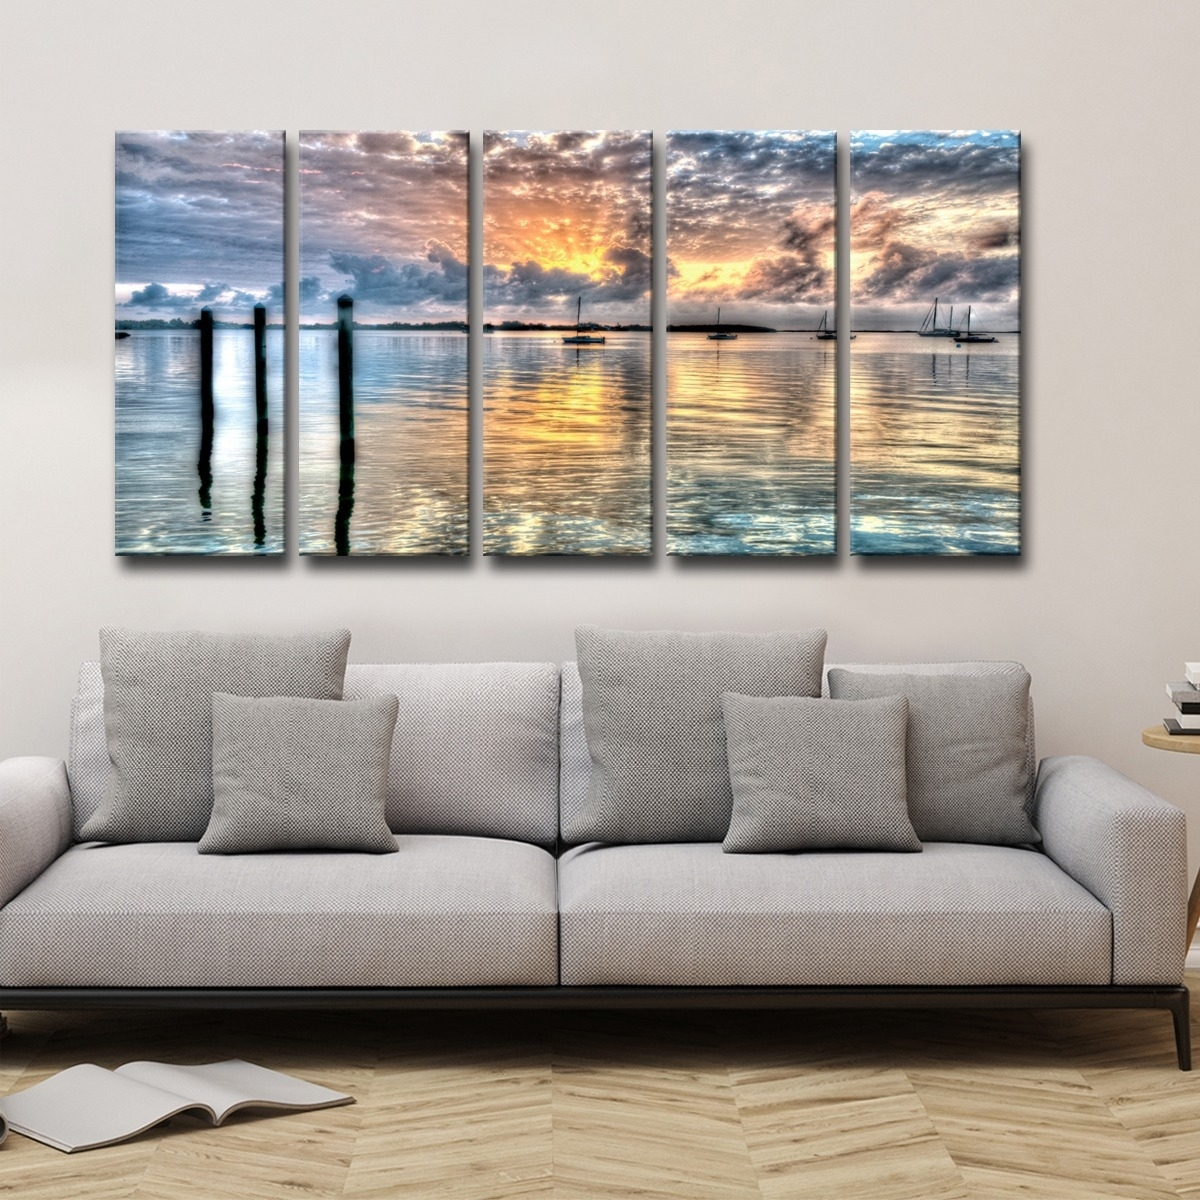 Shop Bruce Bain 'calm Waters' 5 Piece Canvas Wall Art – Free Intended For Current Five Piece Canvas Wall Art (View 18 of 20)